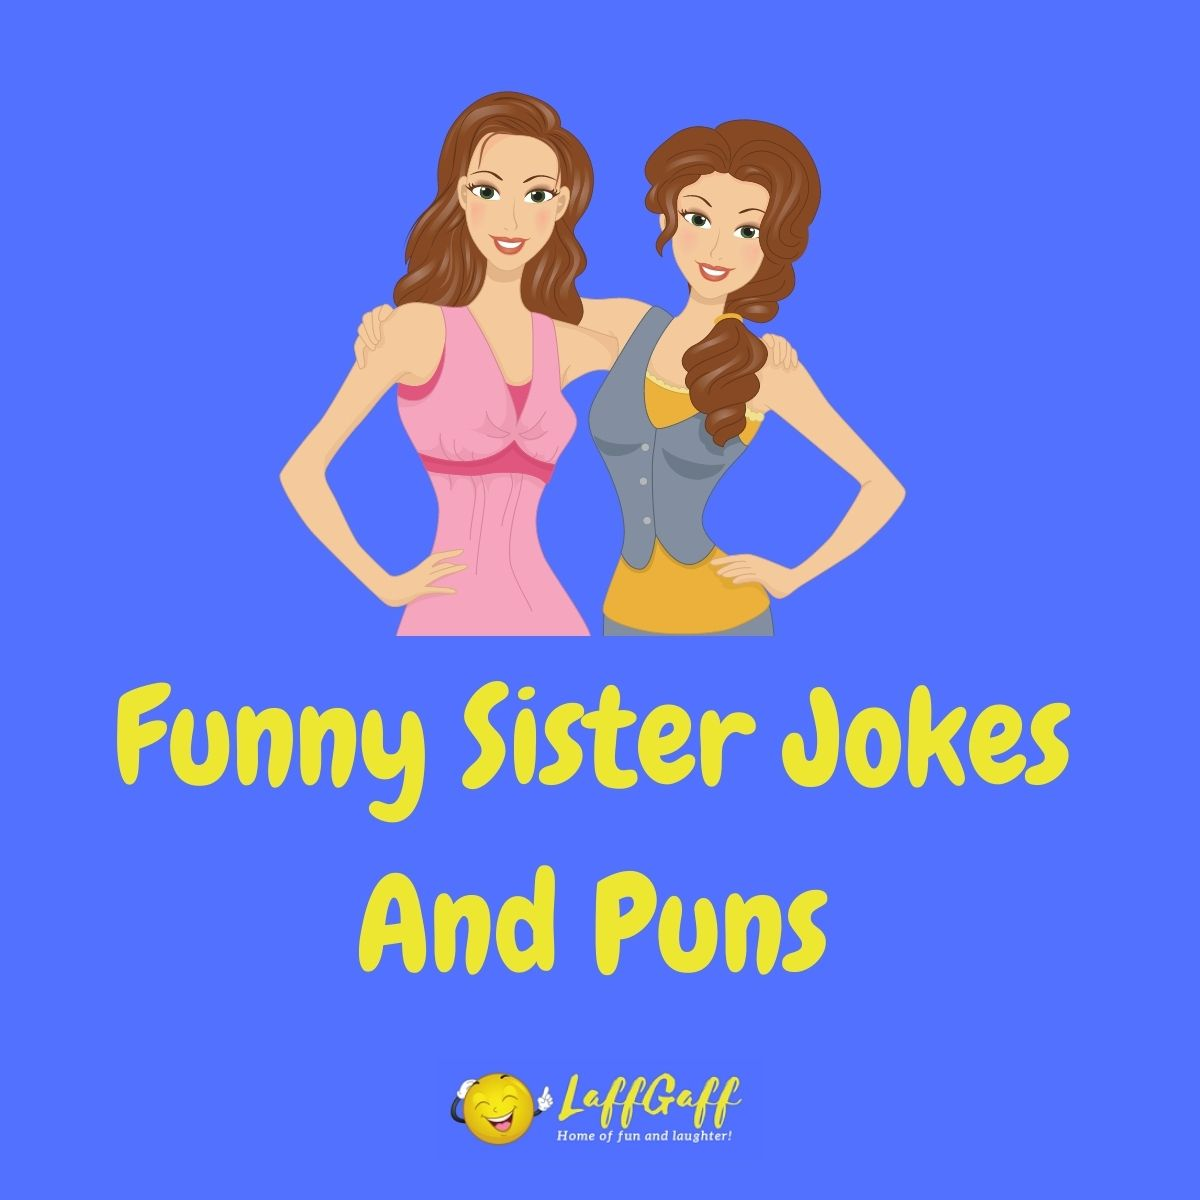 Featured image for a page of funny sister jokes and puns.